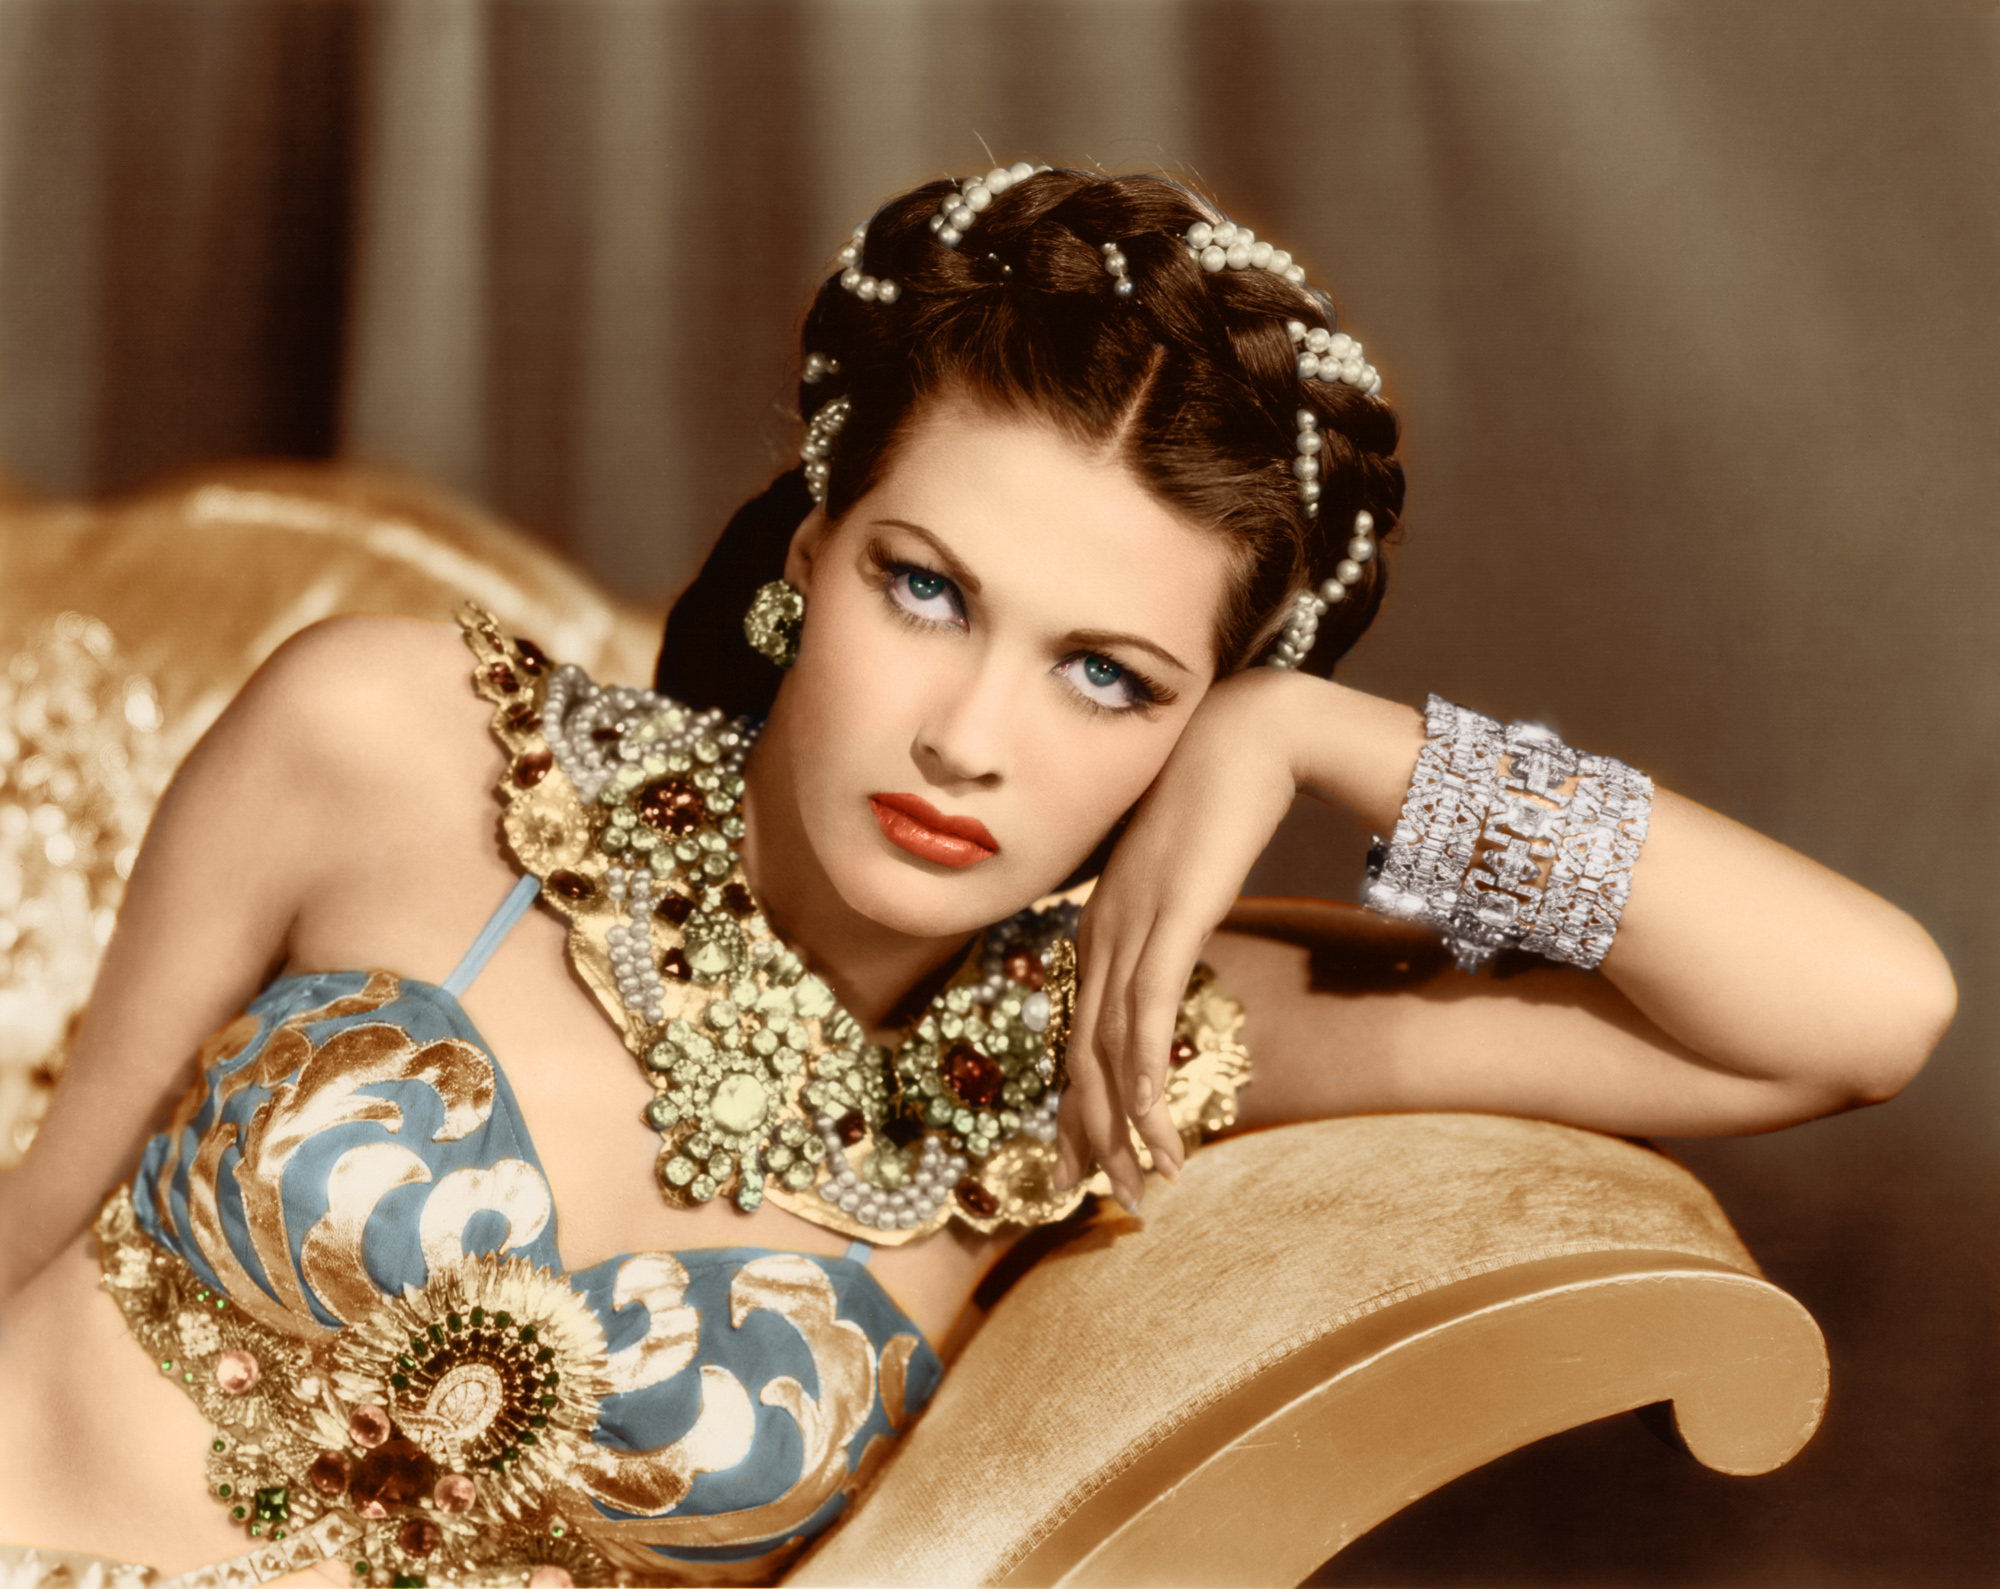 Watch Yvonne De Carlo video